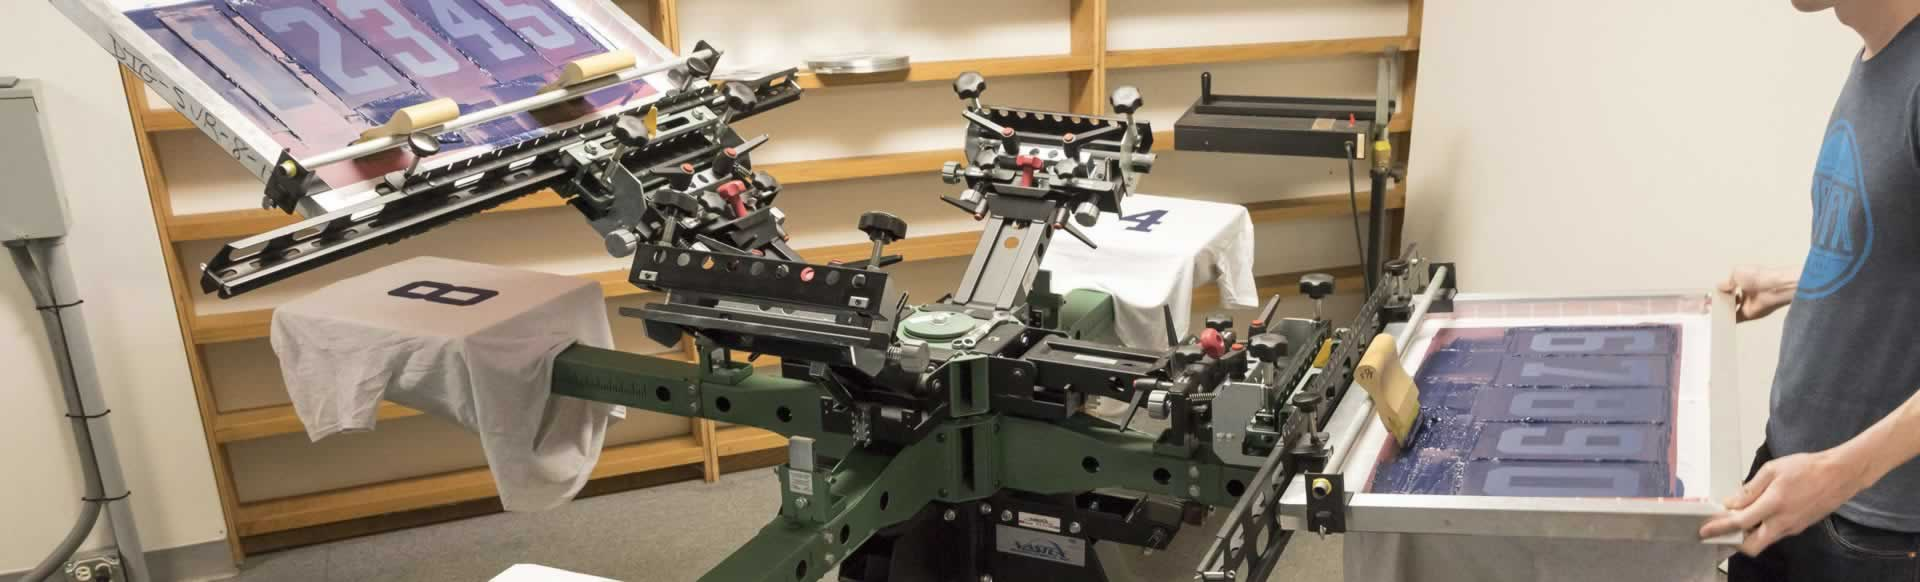 Sign Printer Turned Apparel Printer Handles High Growth with Equipment Upgrades